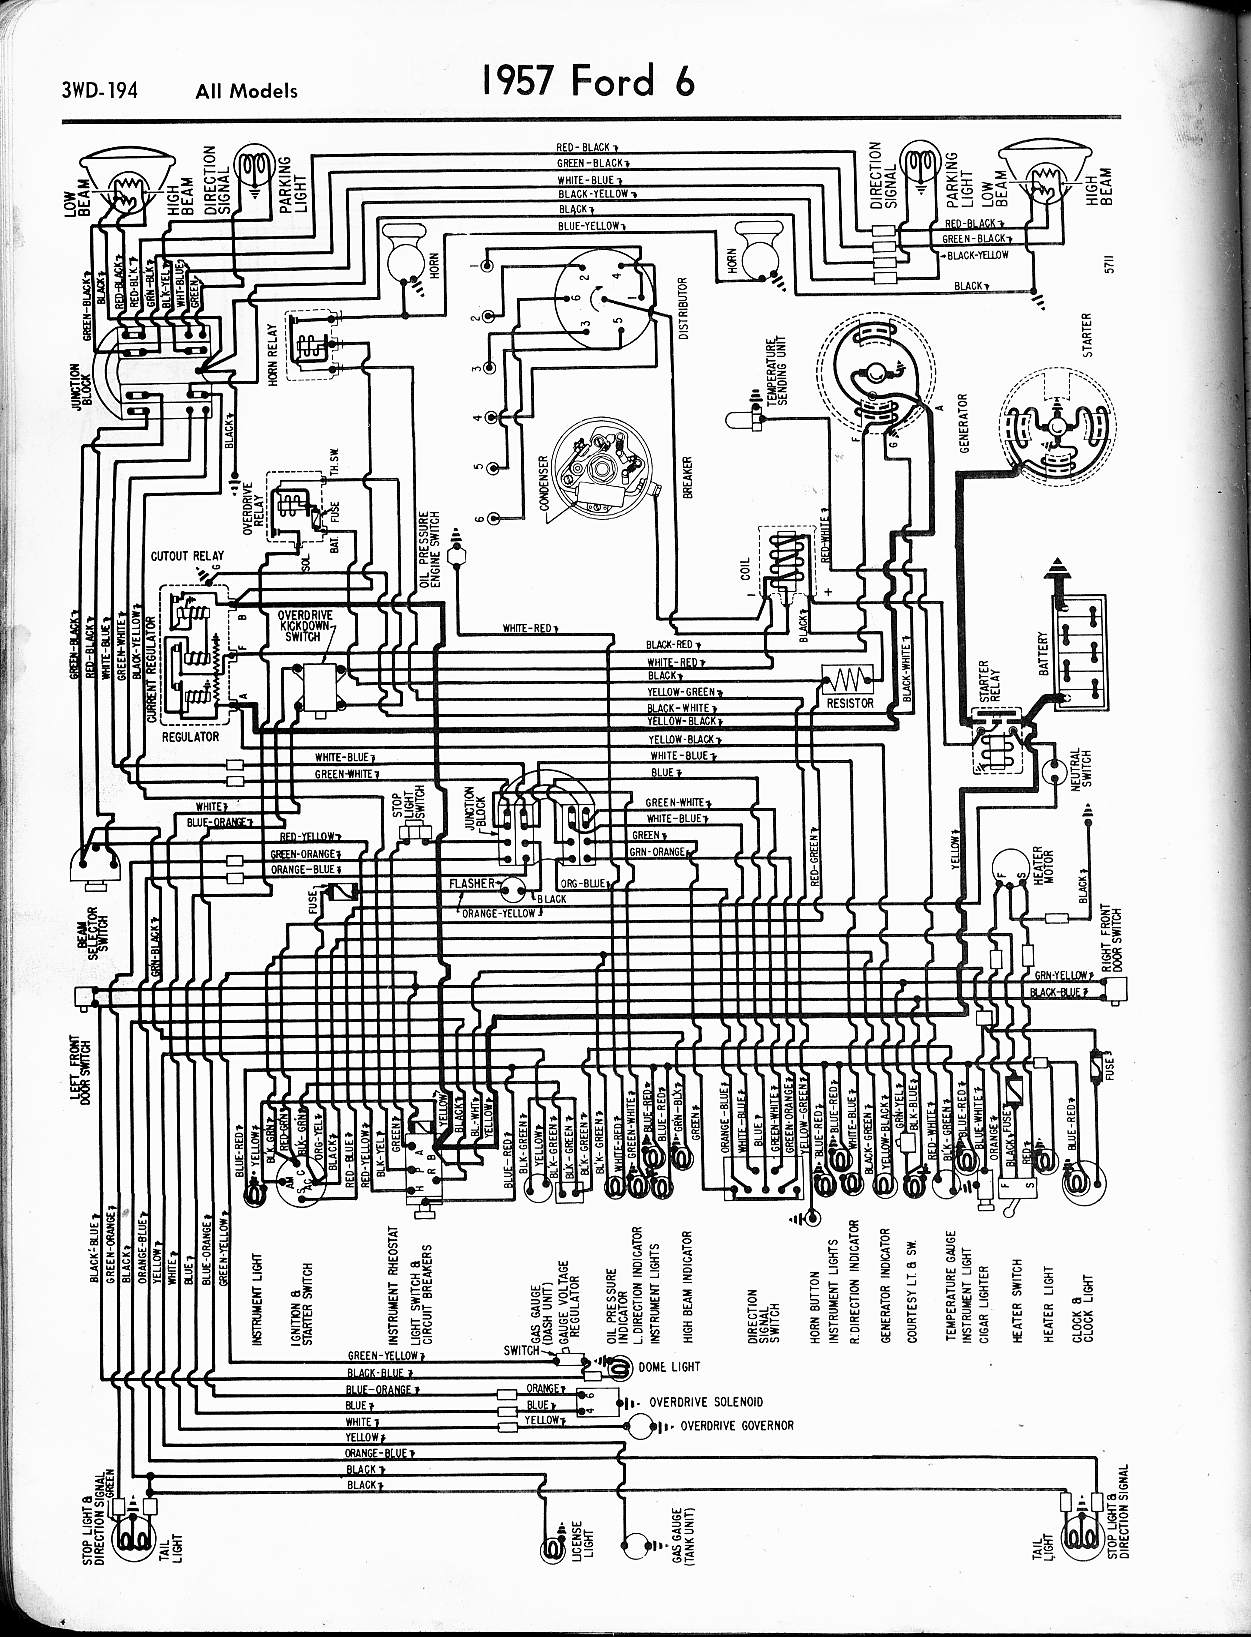 ford wiring basics electrical diagrams forum u2022 rh jimmellon co uk